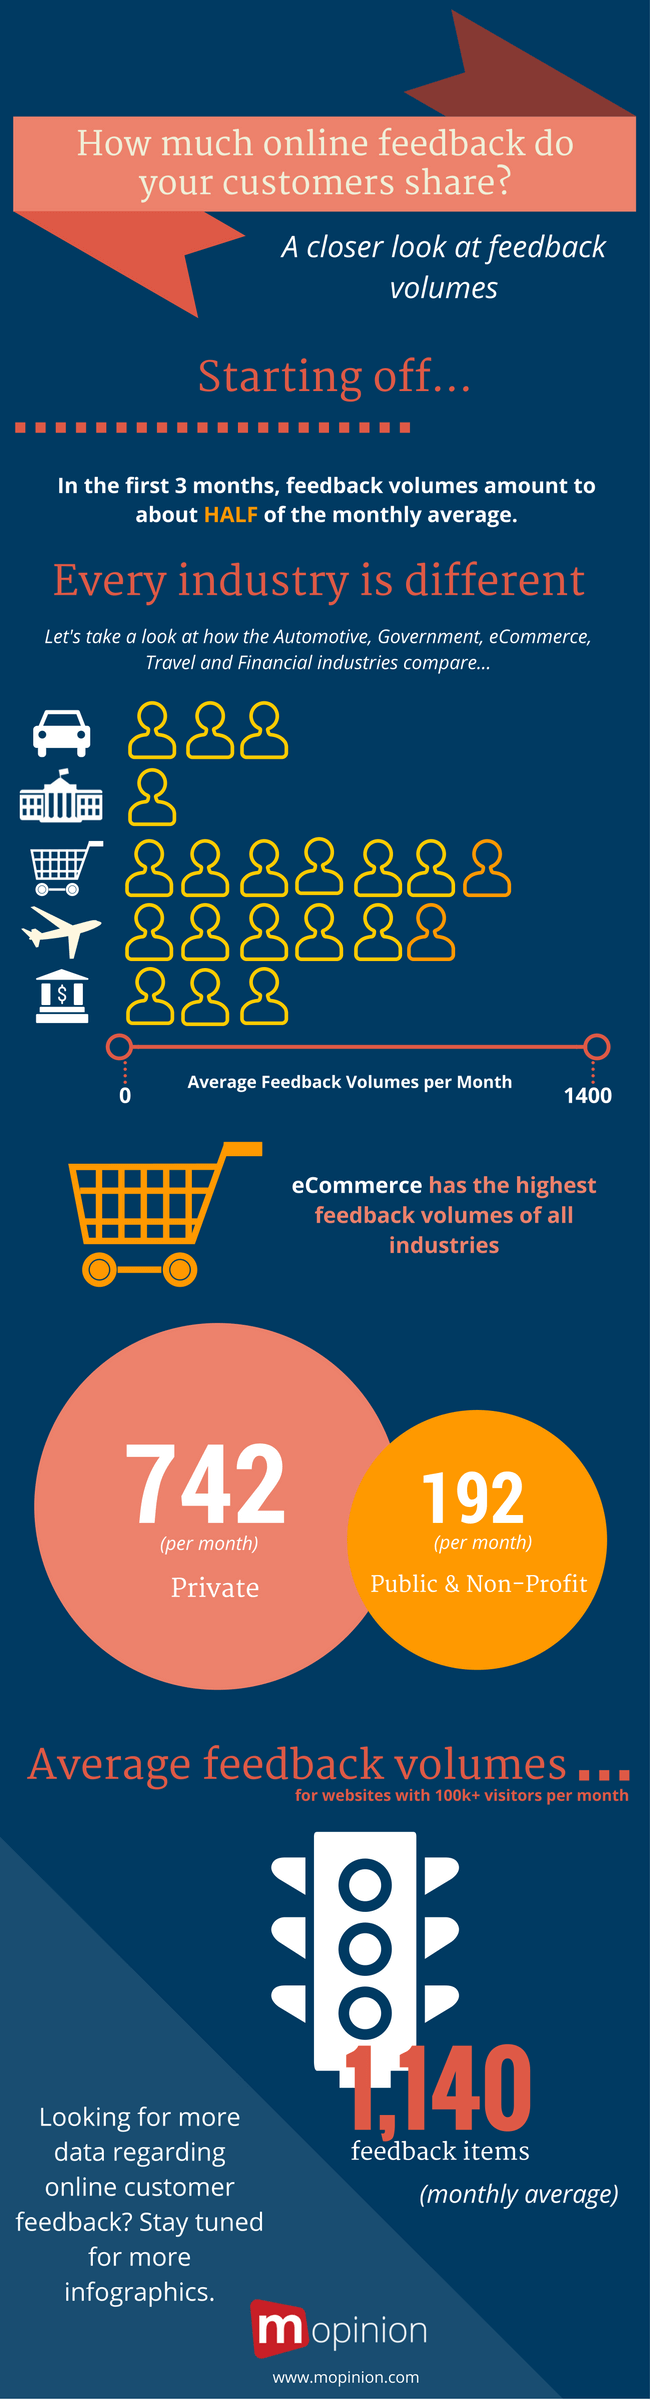 Mopinion: How much feedback do your customers share - (Infographic)